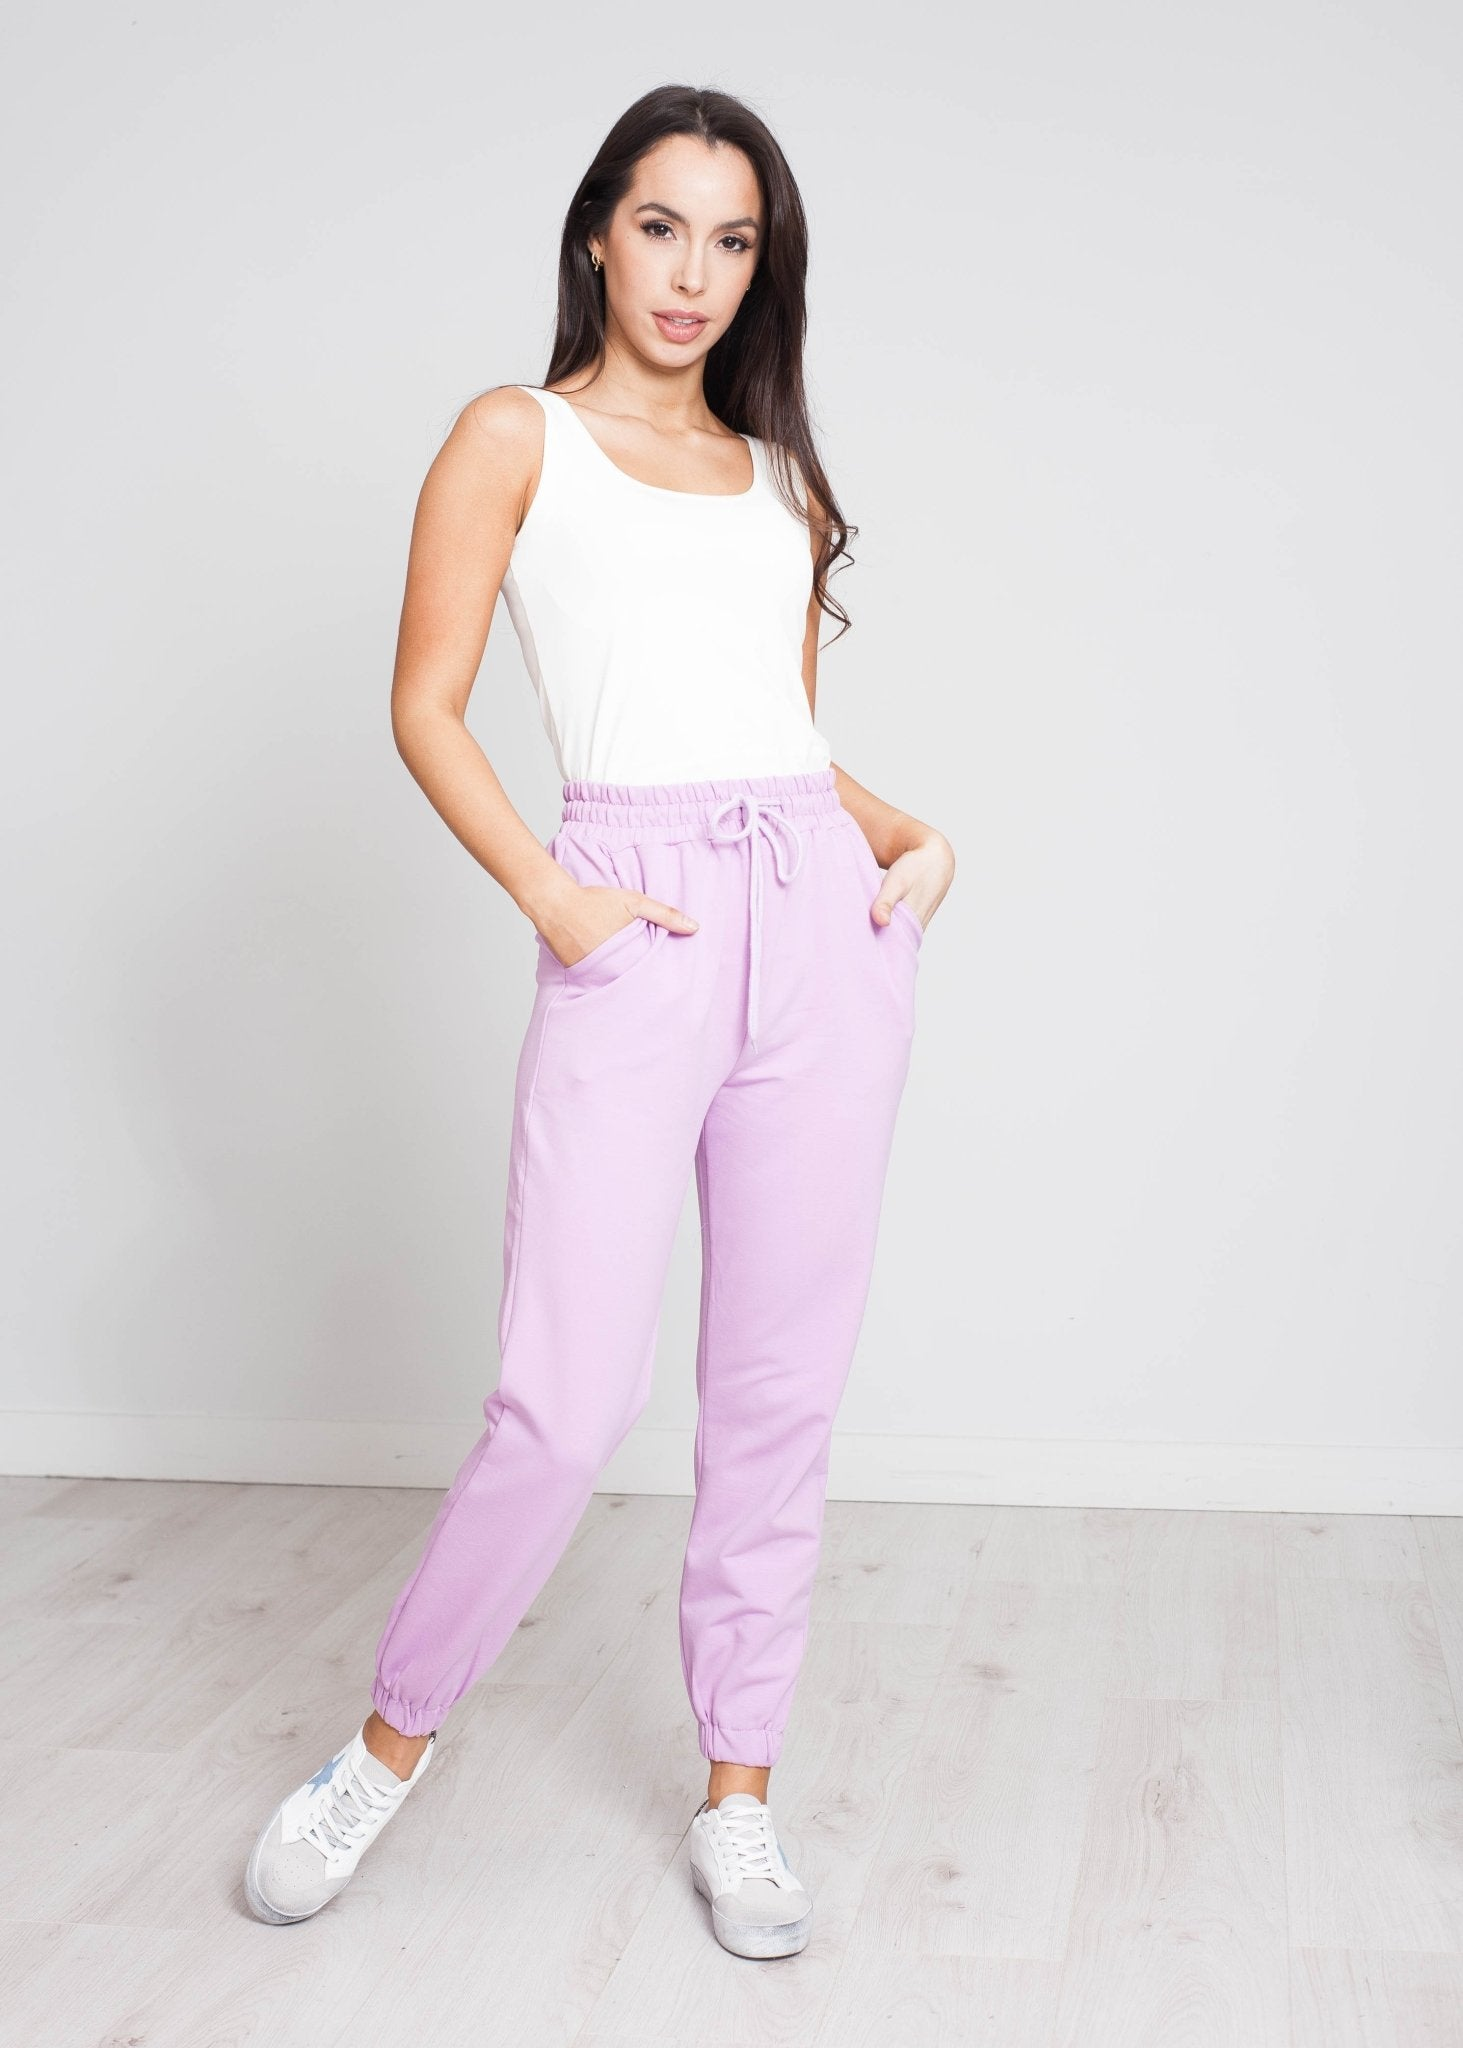 Scarlet Joggers In Lilac - The Walk in Wardrobe